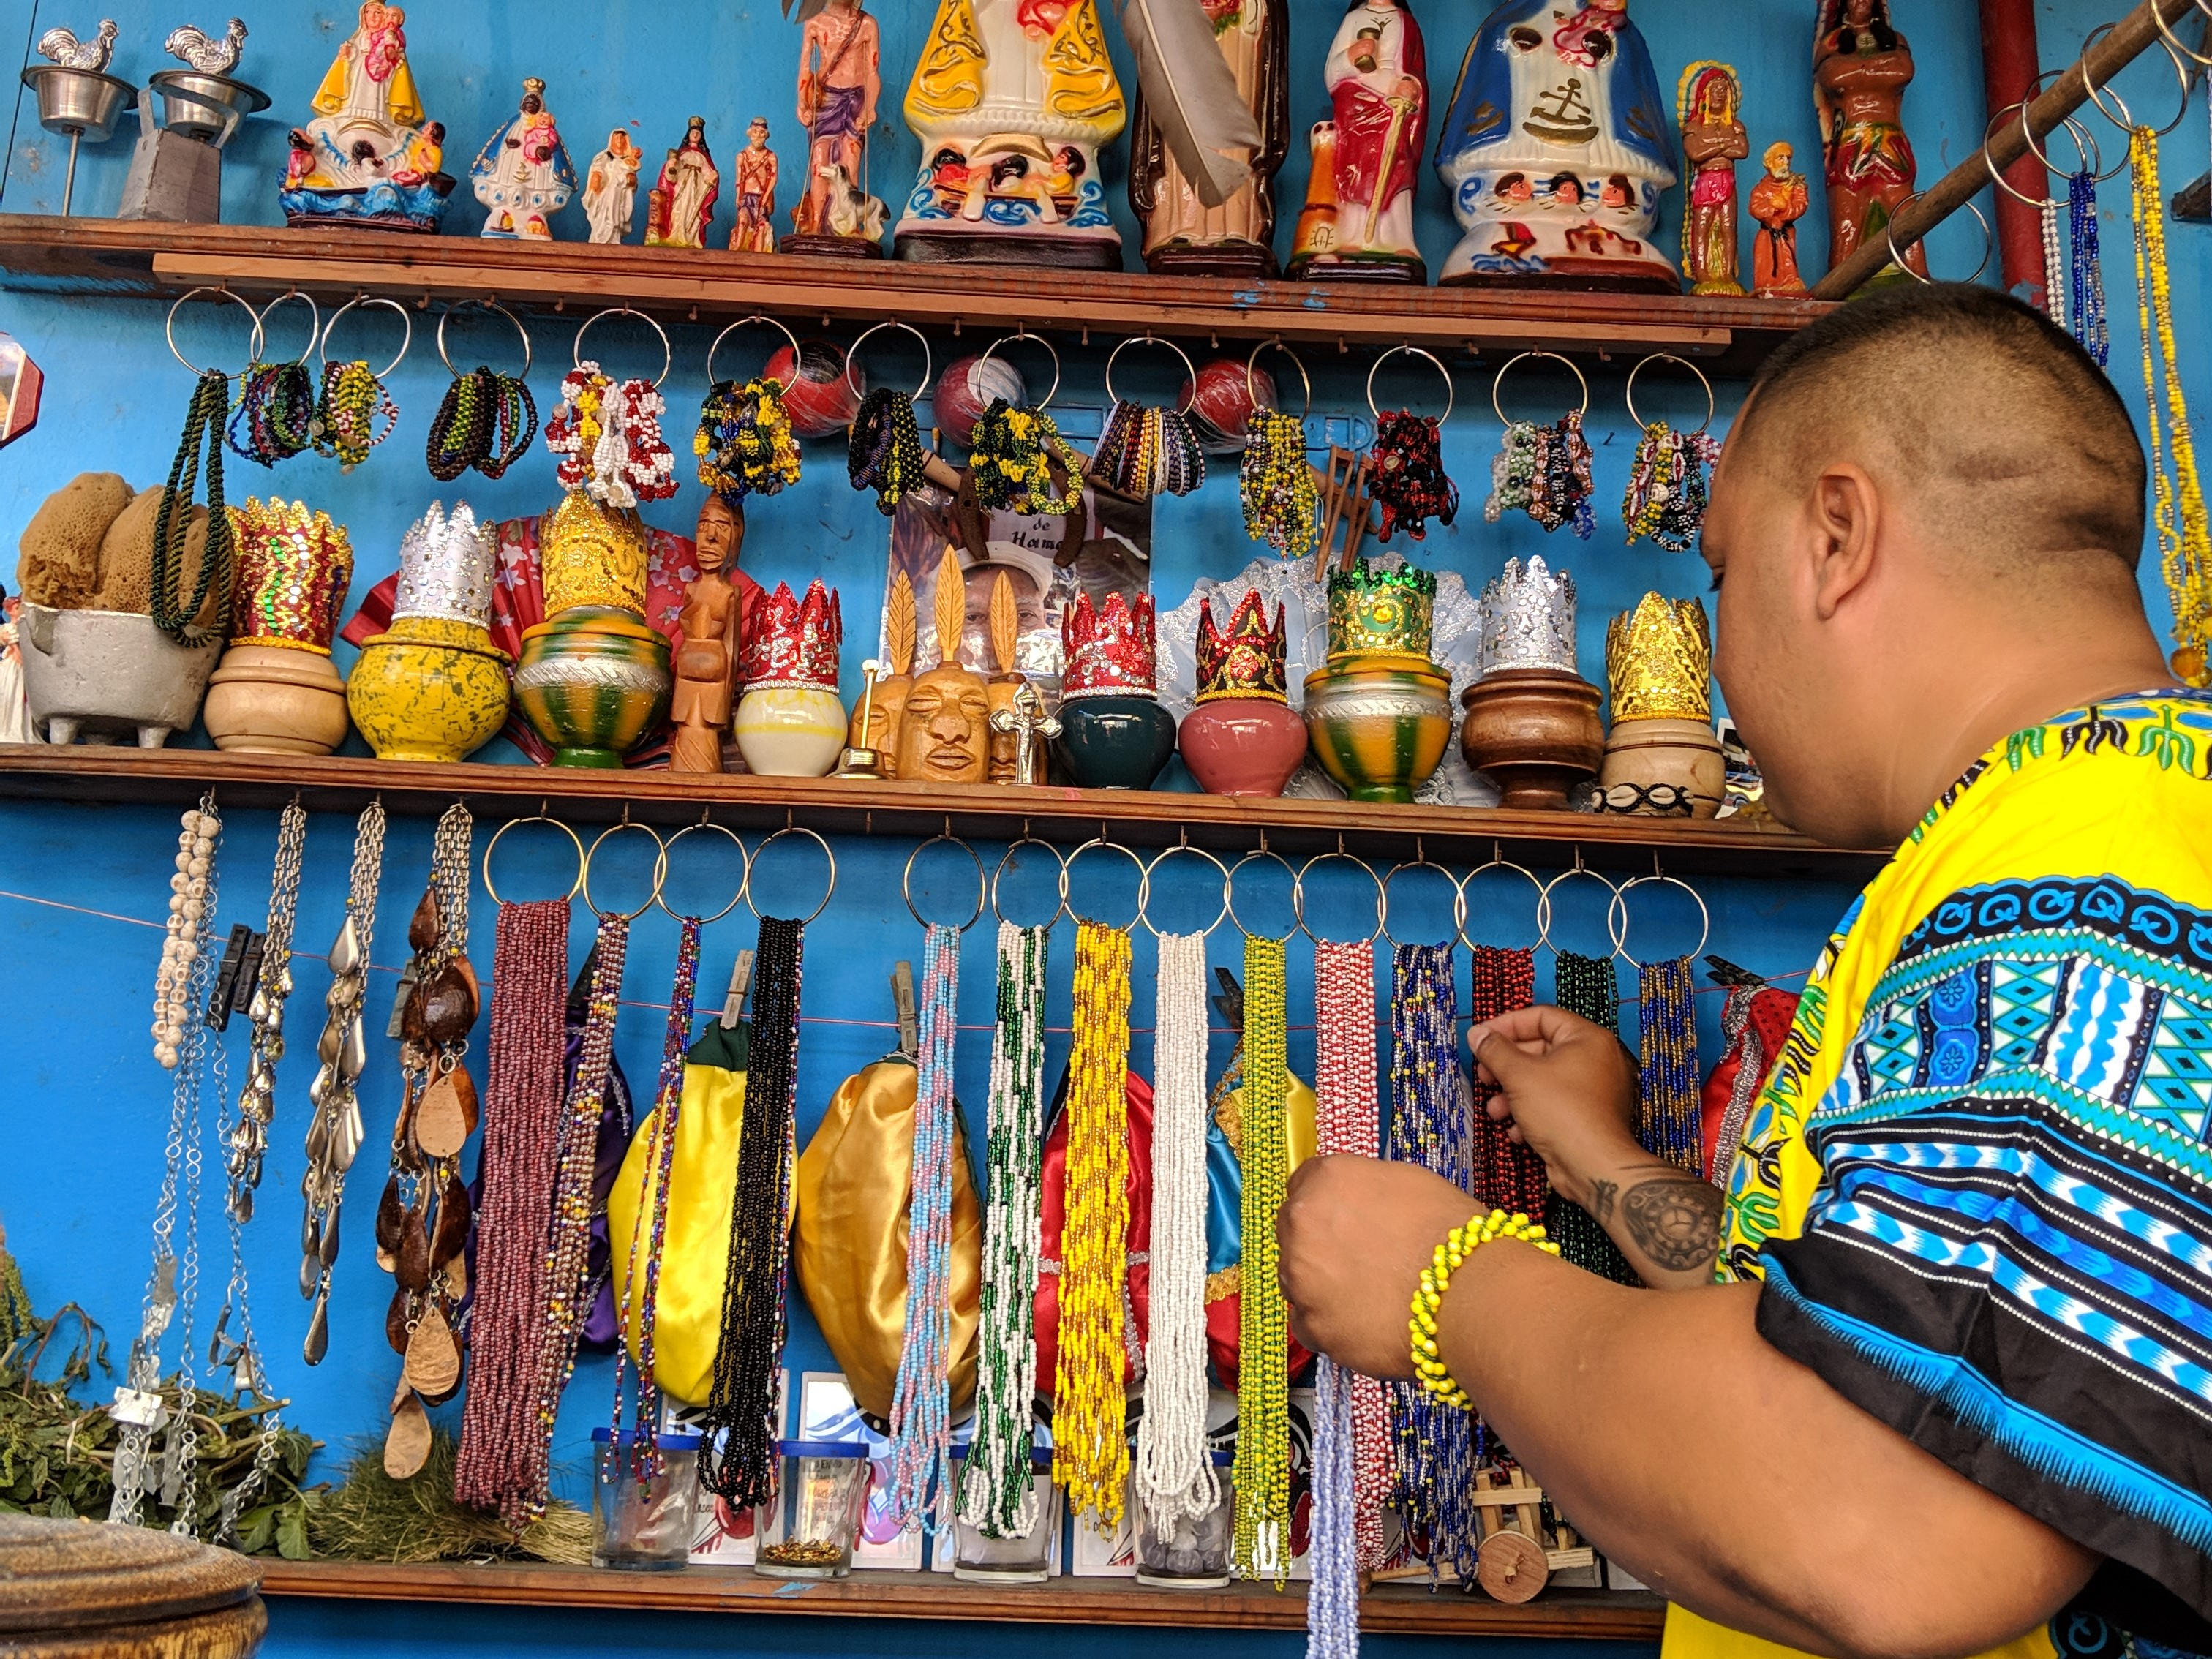 The colorful Callejon de Hamel in Centro Habana